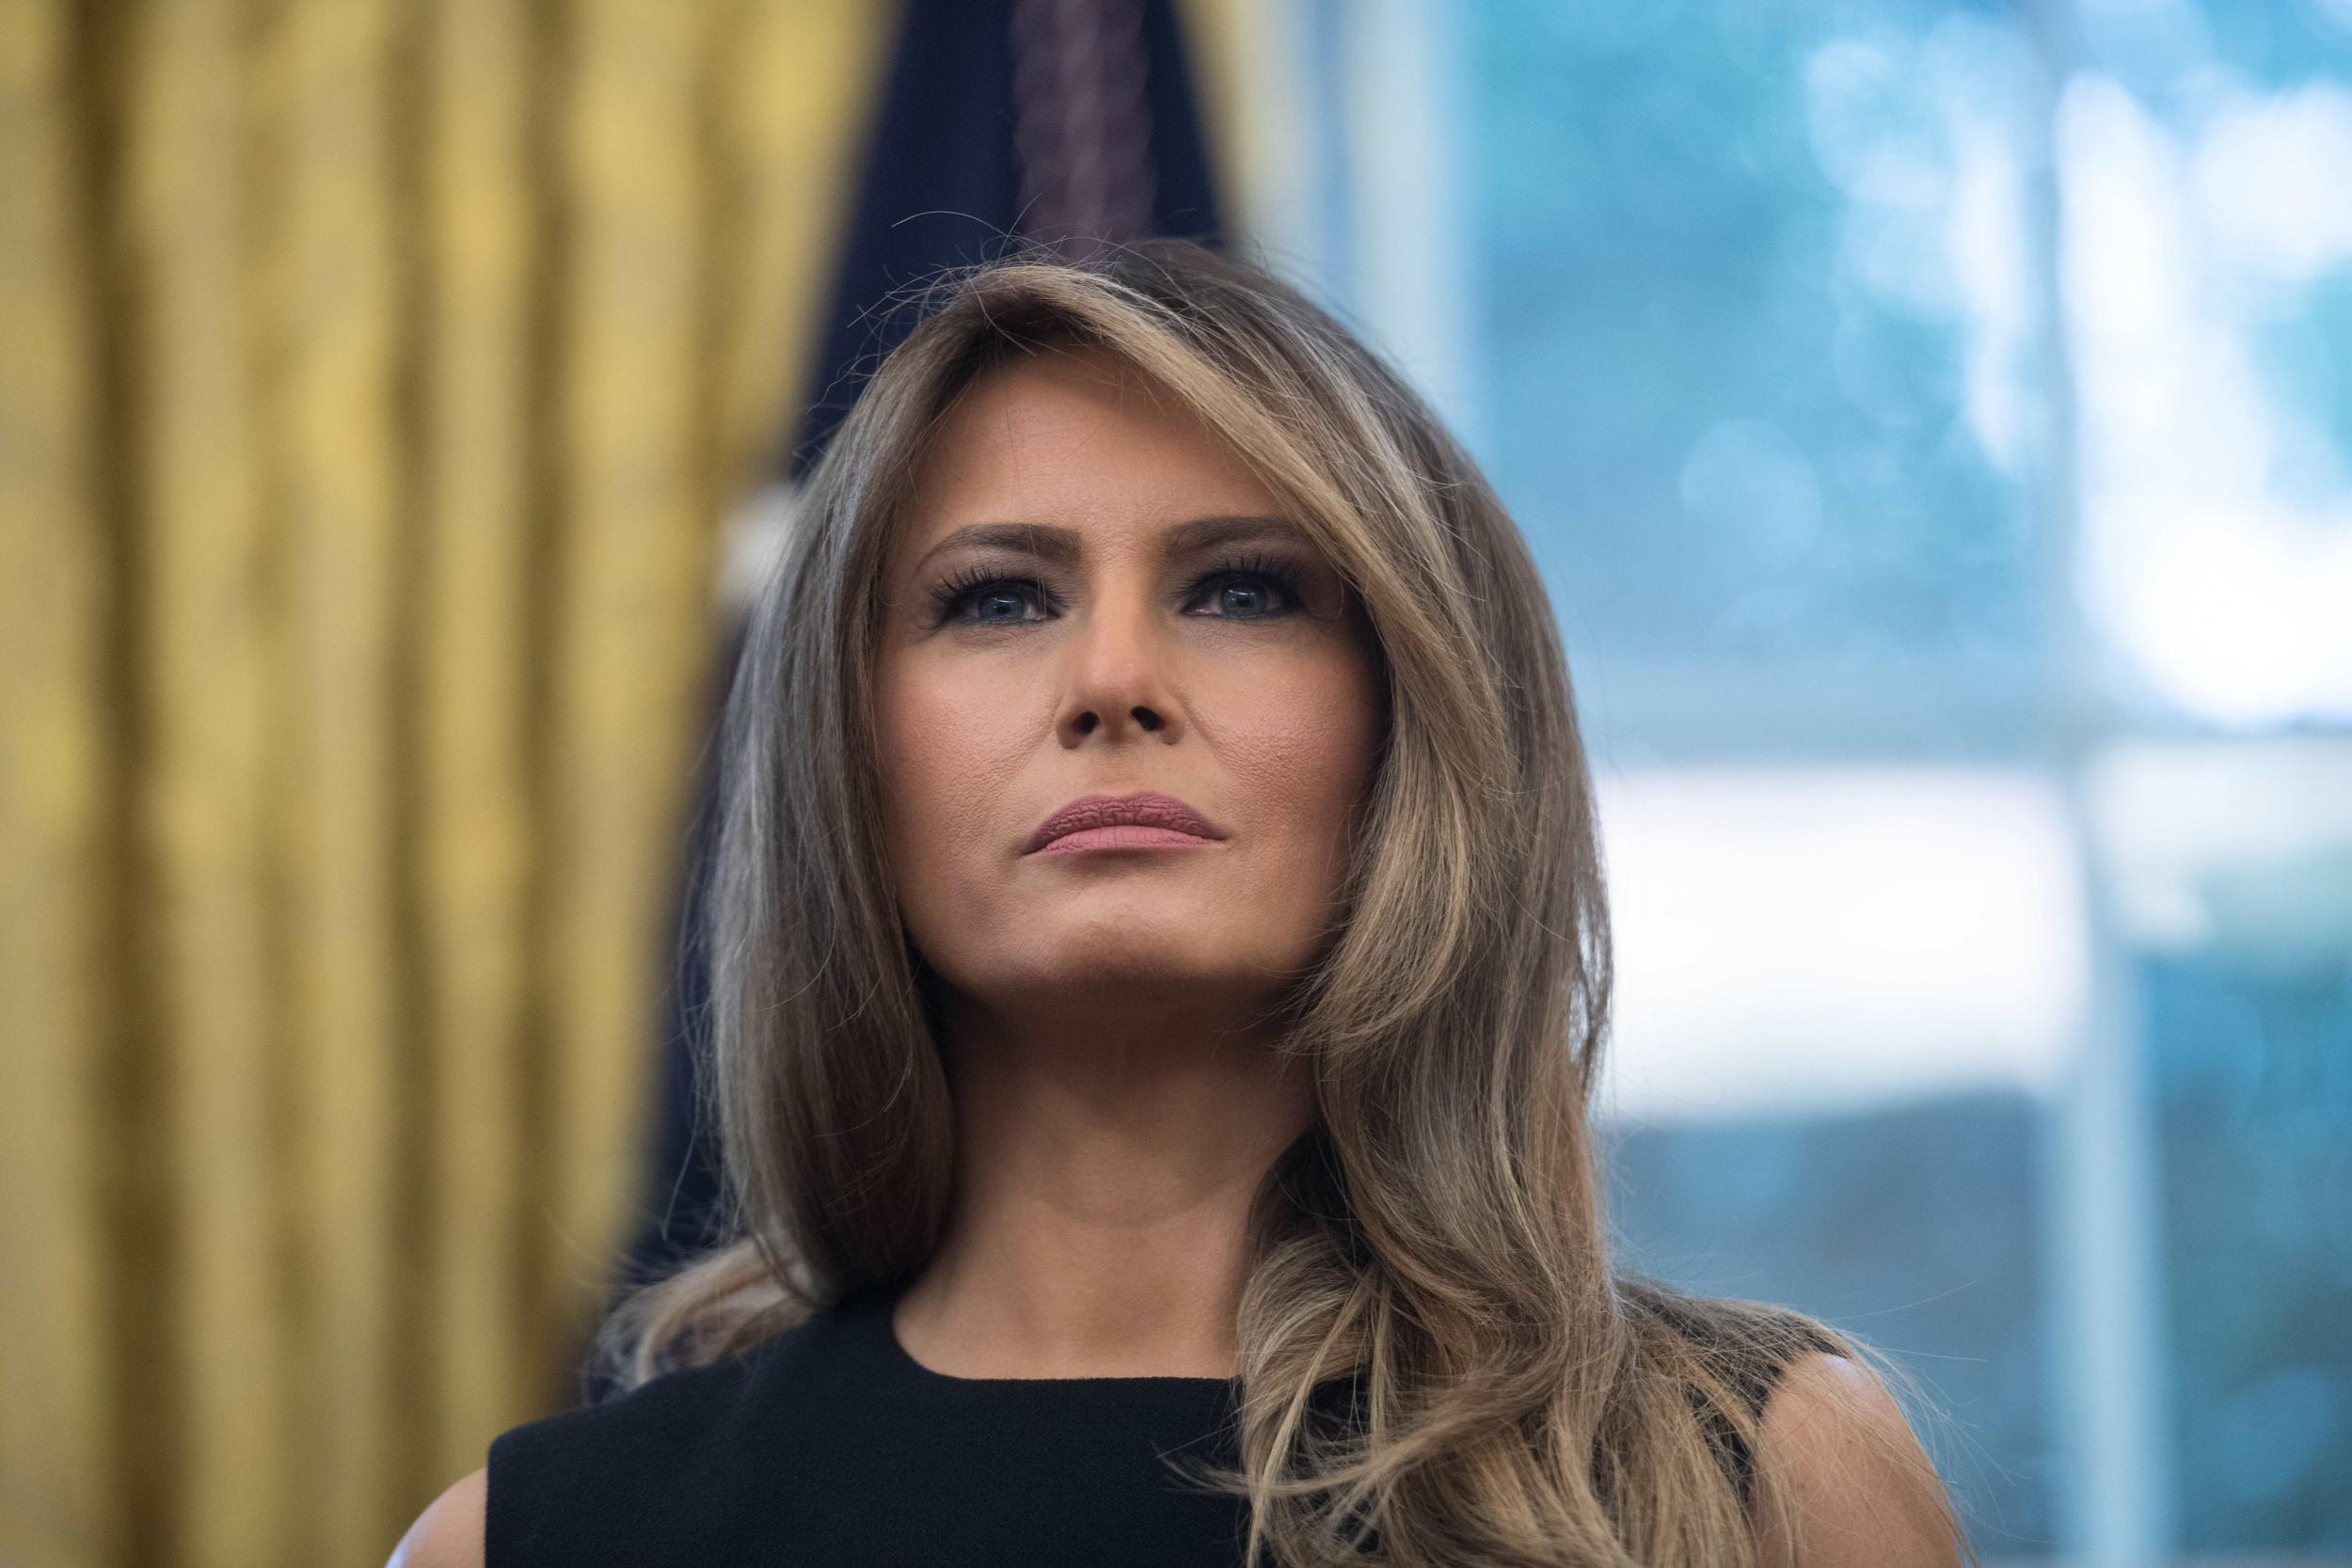 Ivana Trump's 'First Lady' remark shines spotlight on Melania's low key  approach to public role | The Independent